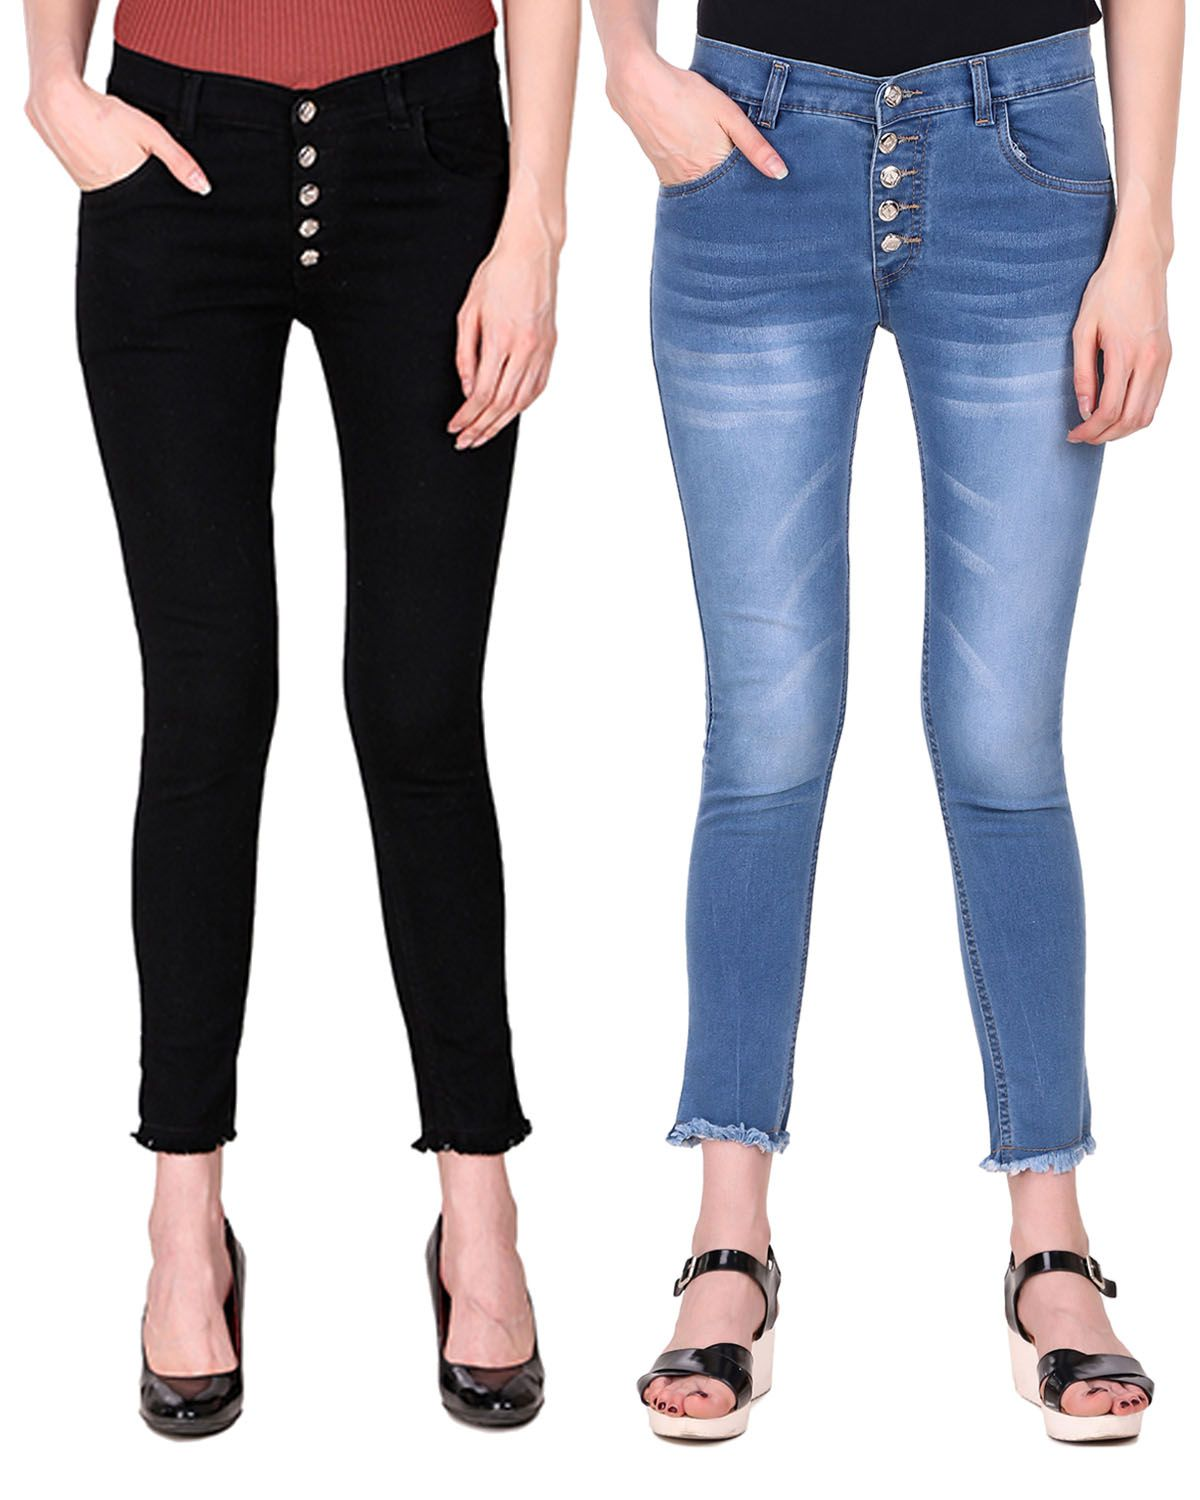 Ansh Fashion Wear Denim Lycra Jeans - Multi Color